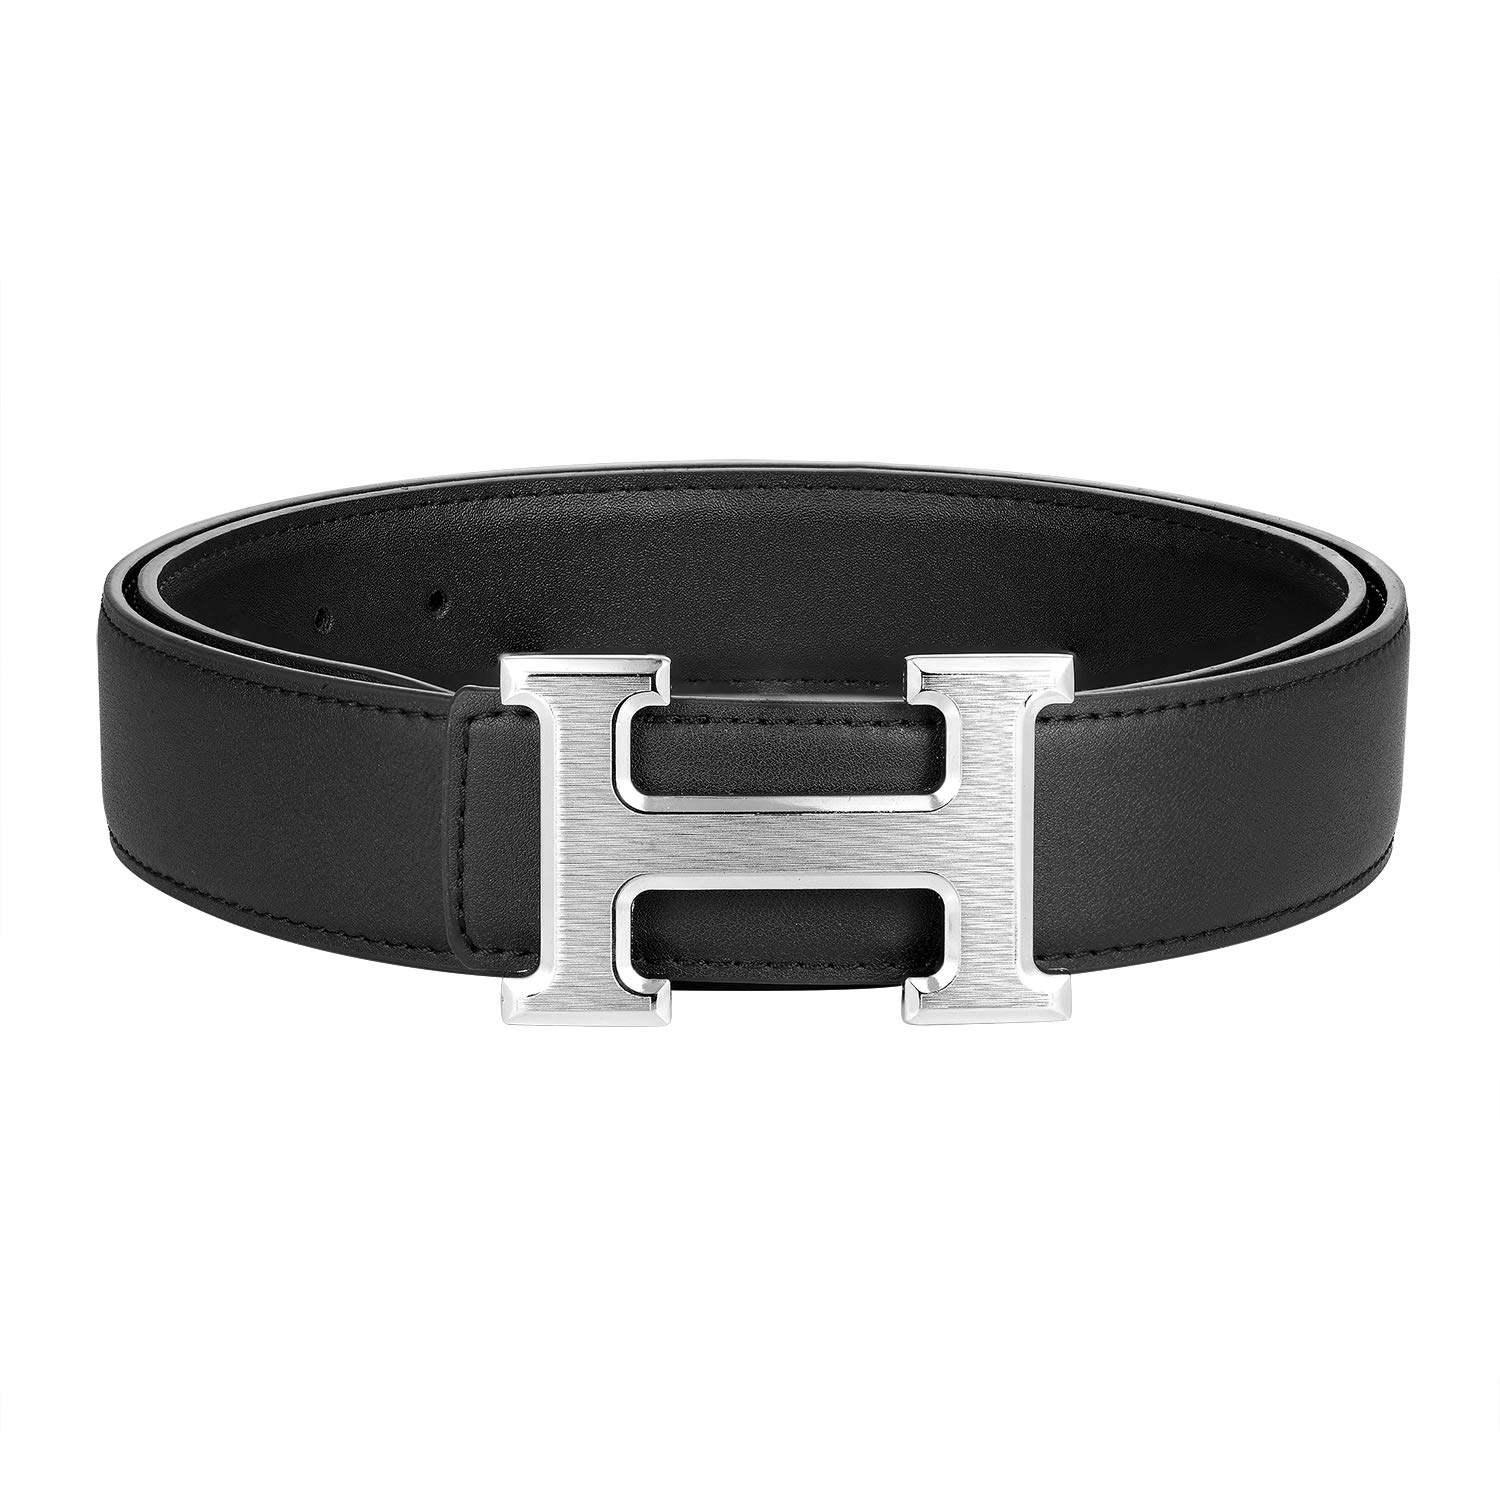 Fashion Leather Metal Buckle Unisex Women Men Belt Casual Business Beltteen s12-1-belt